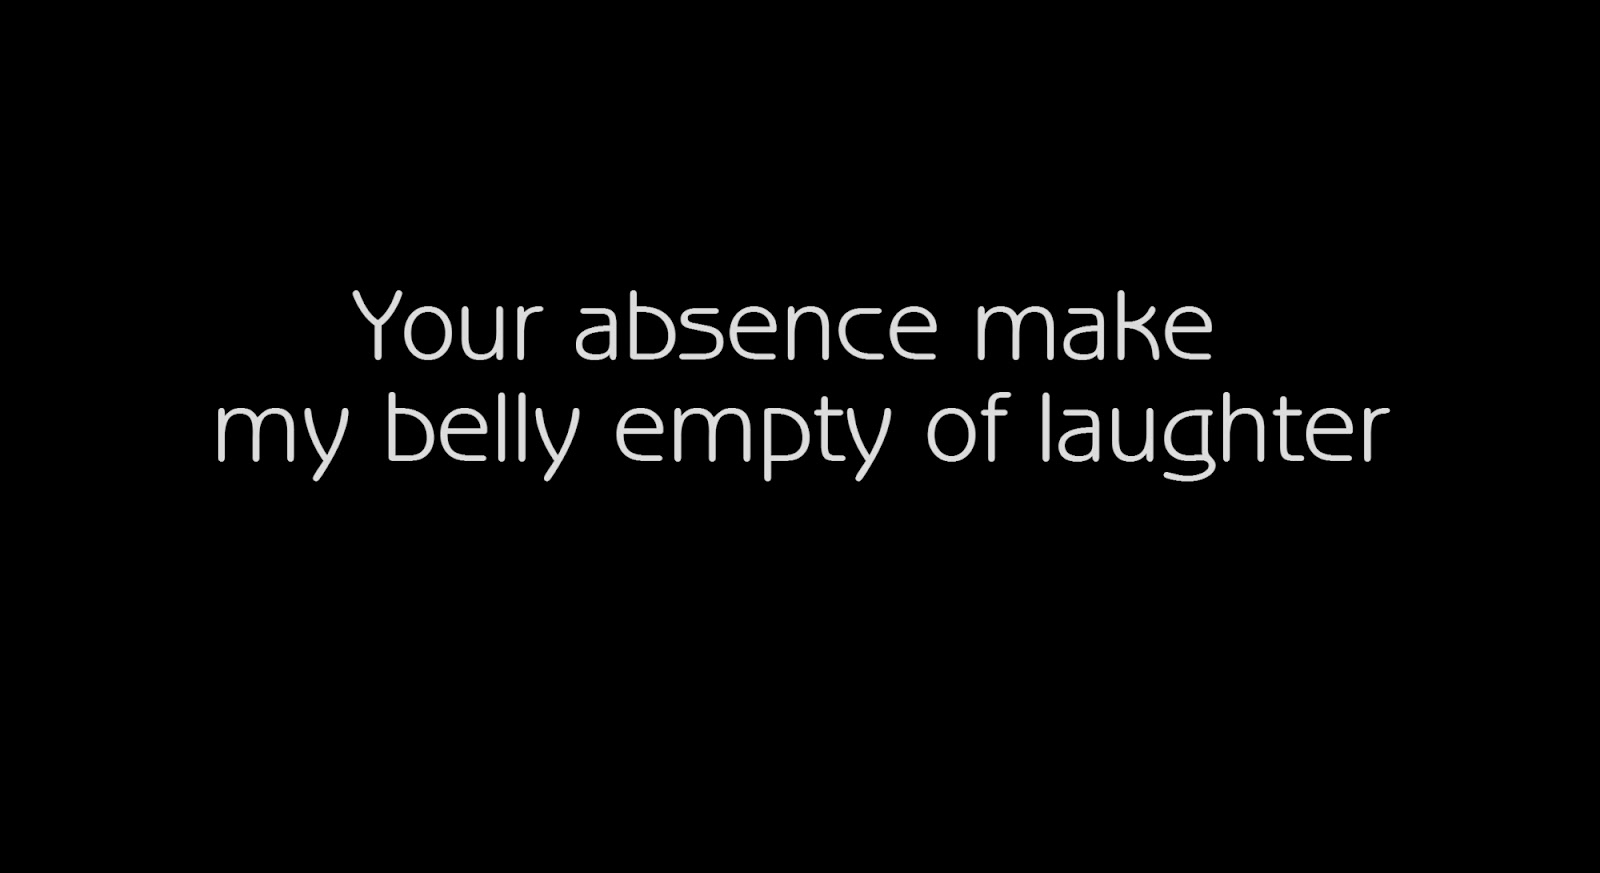 Your absence make my belly empty of laughter